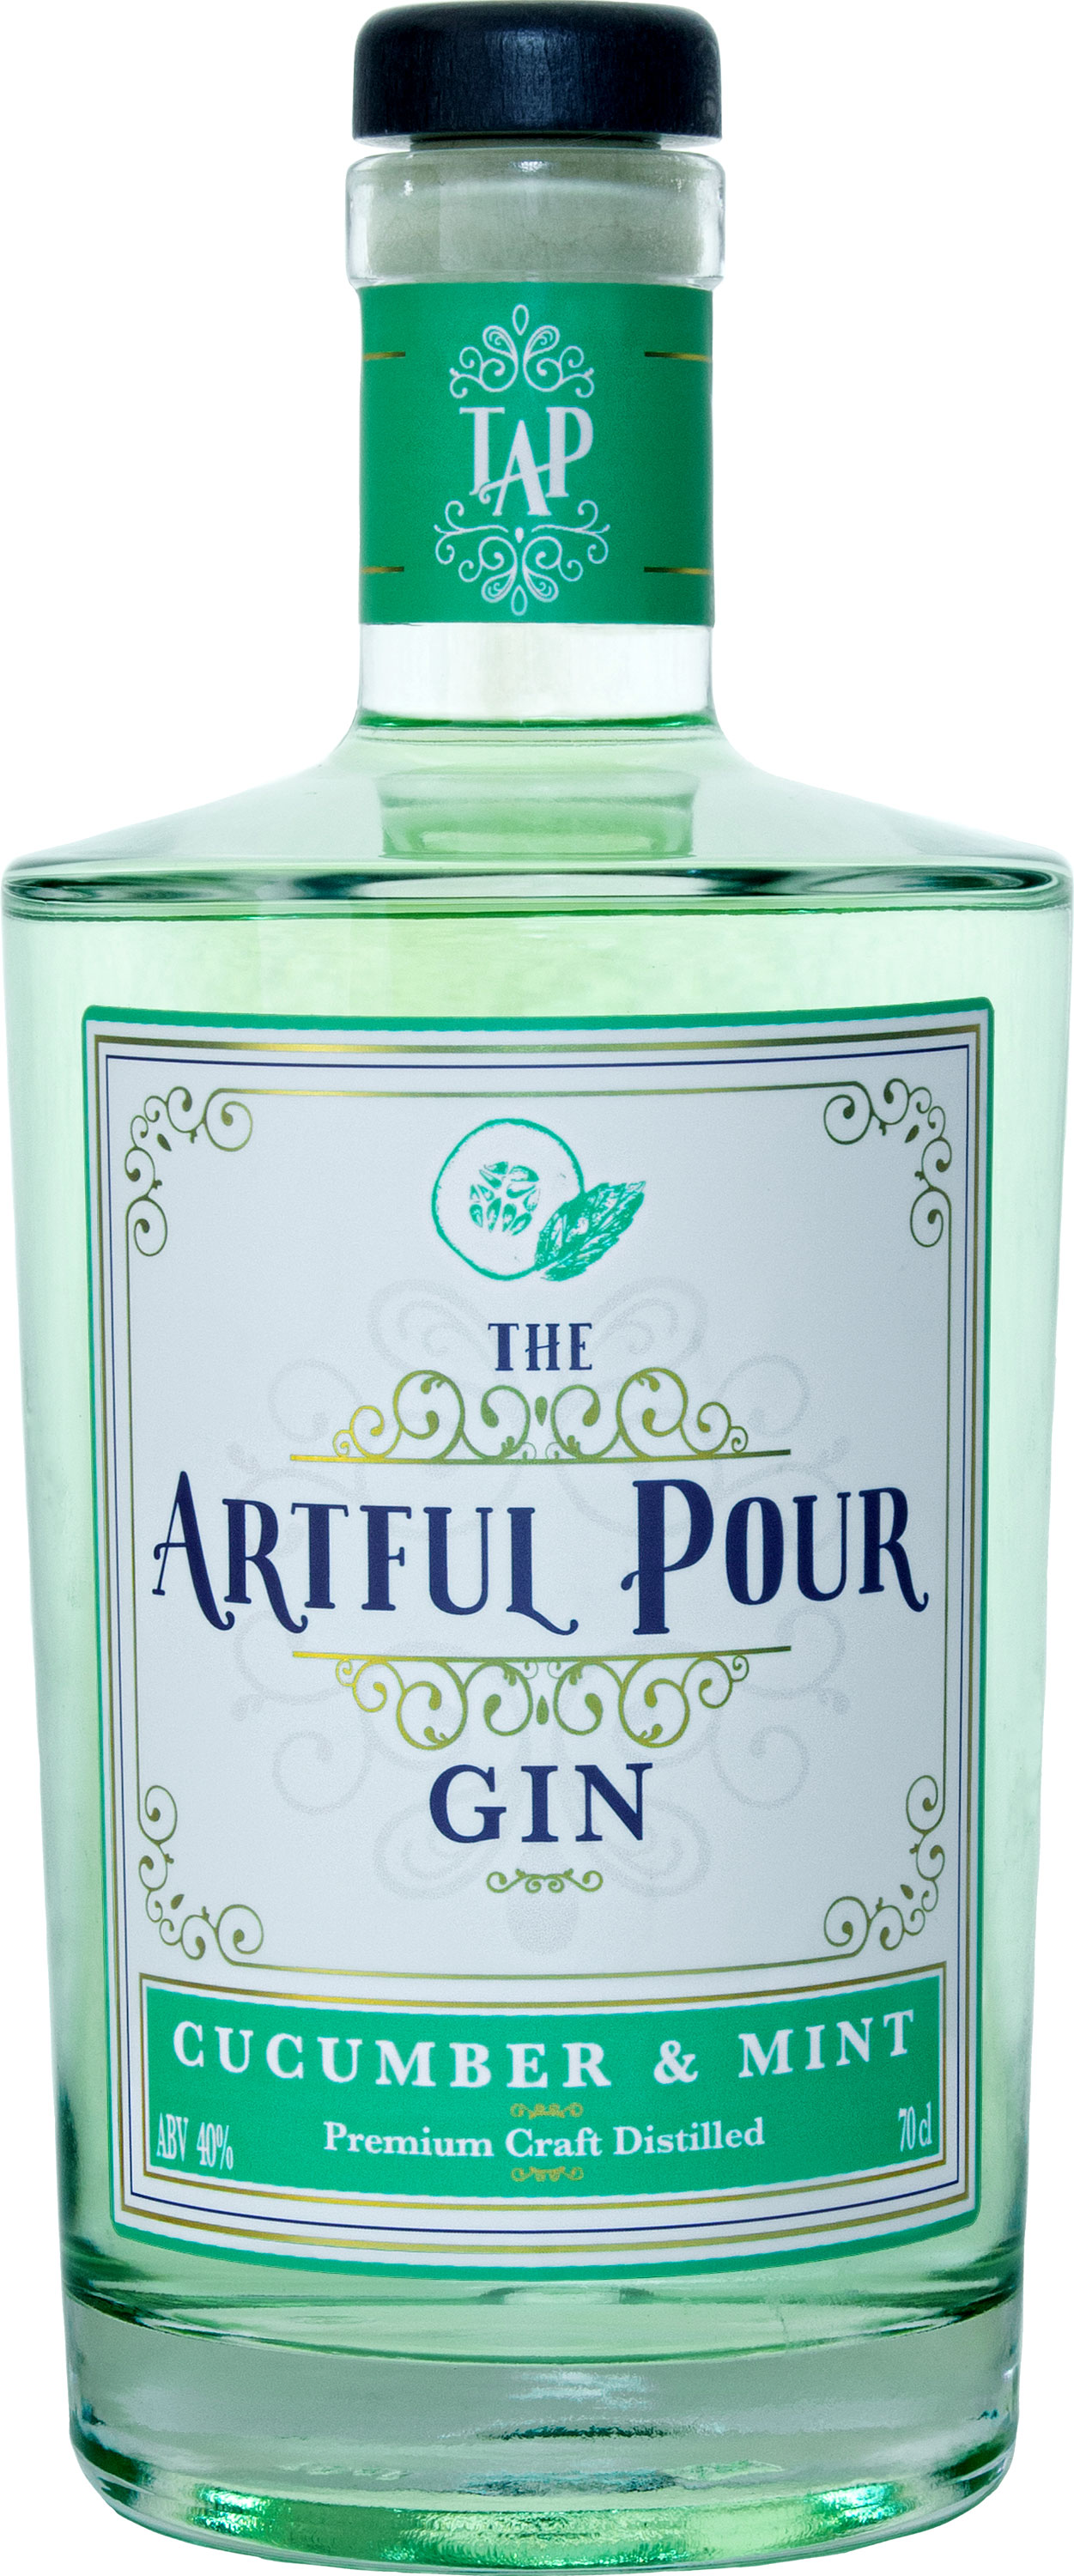 The Artful Pour - Cucumber & Mint Gin 70cl Bottle